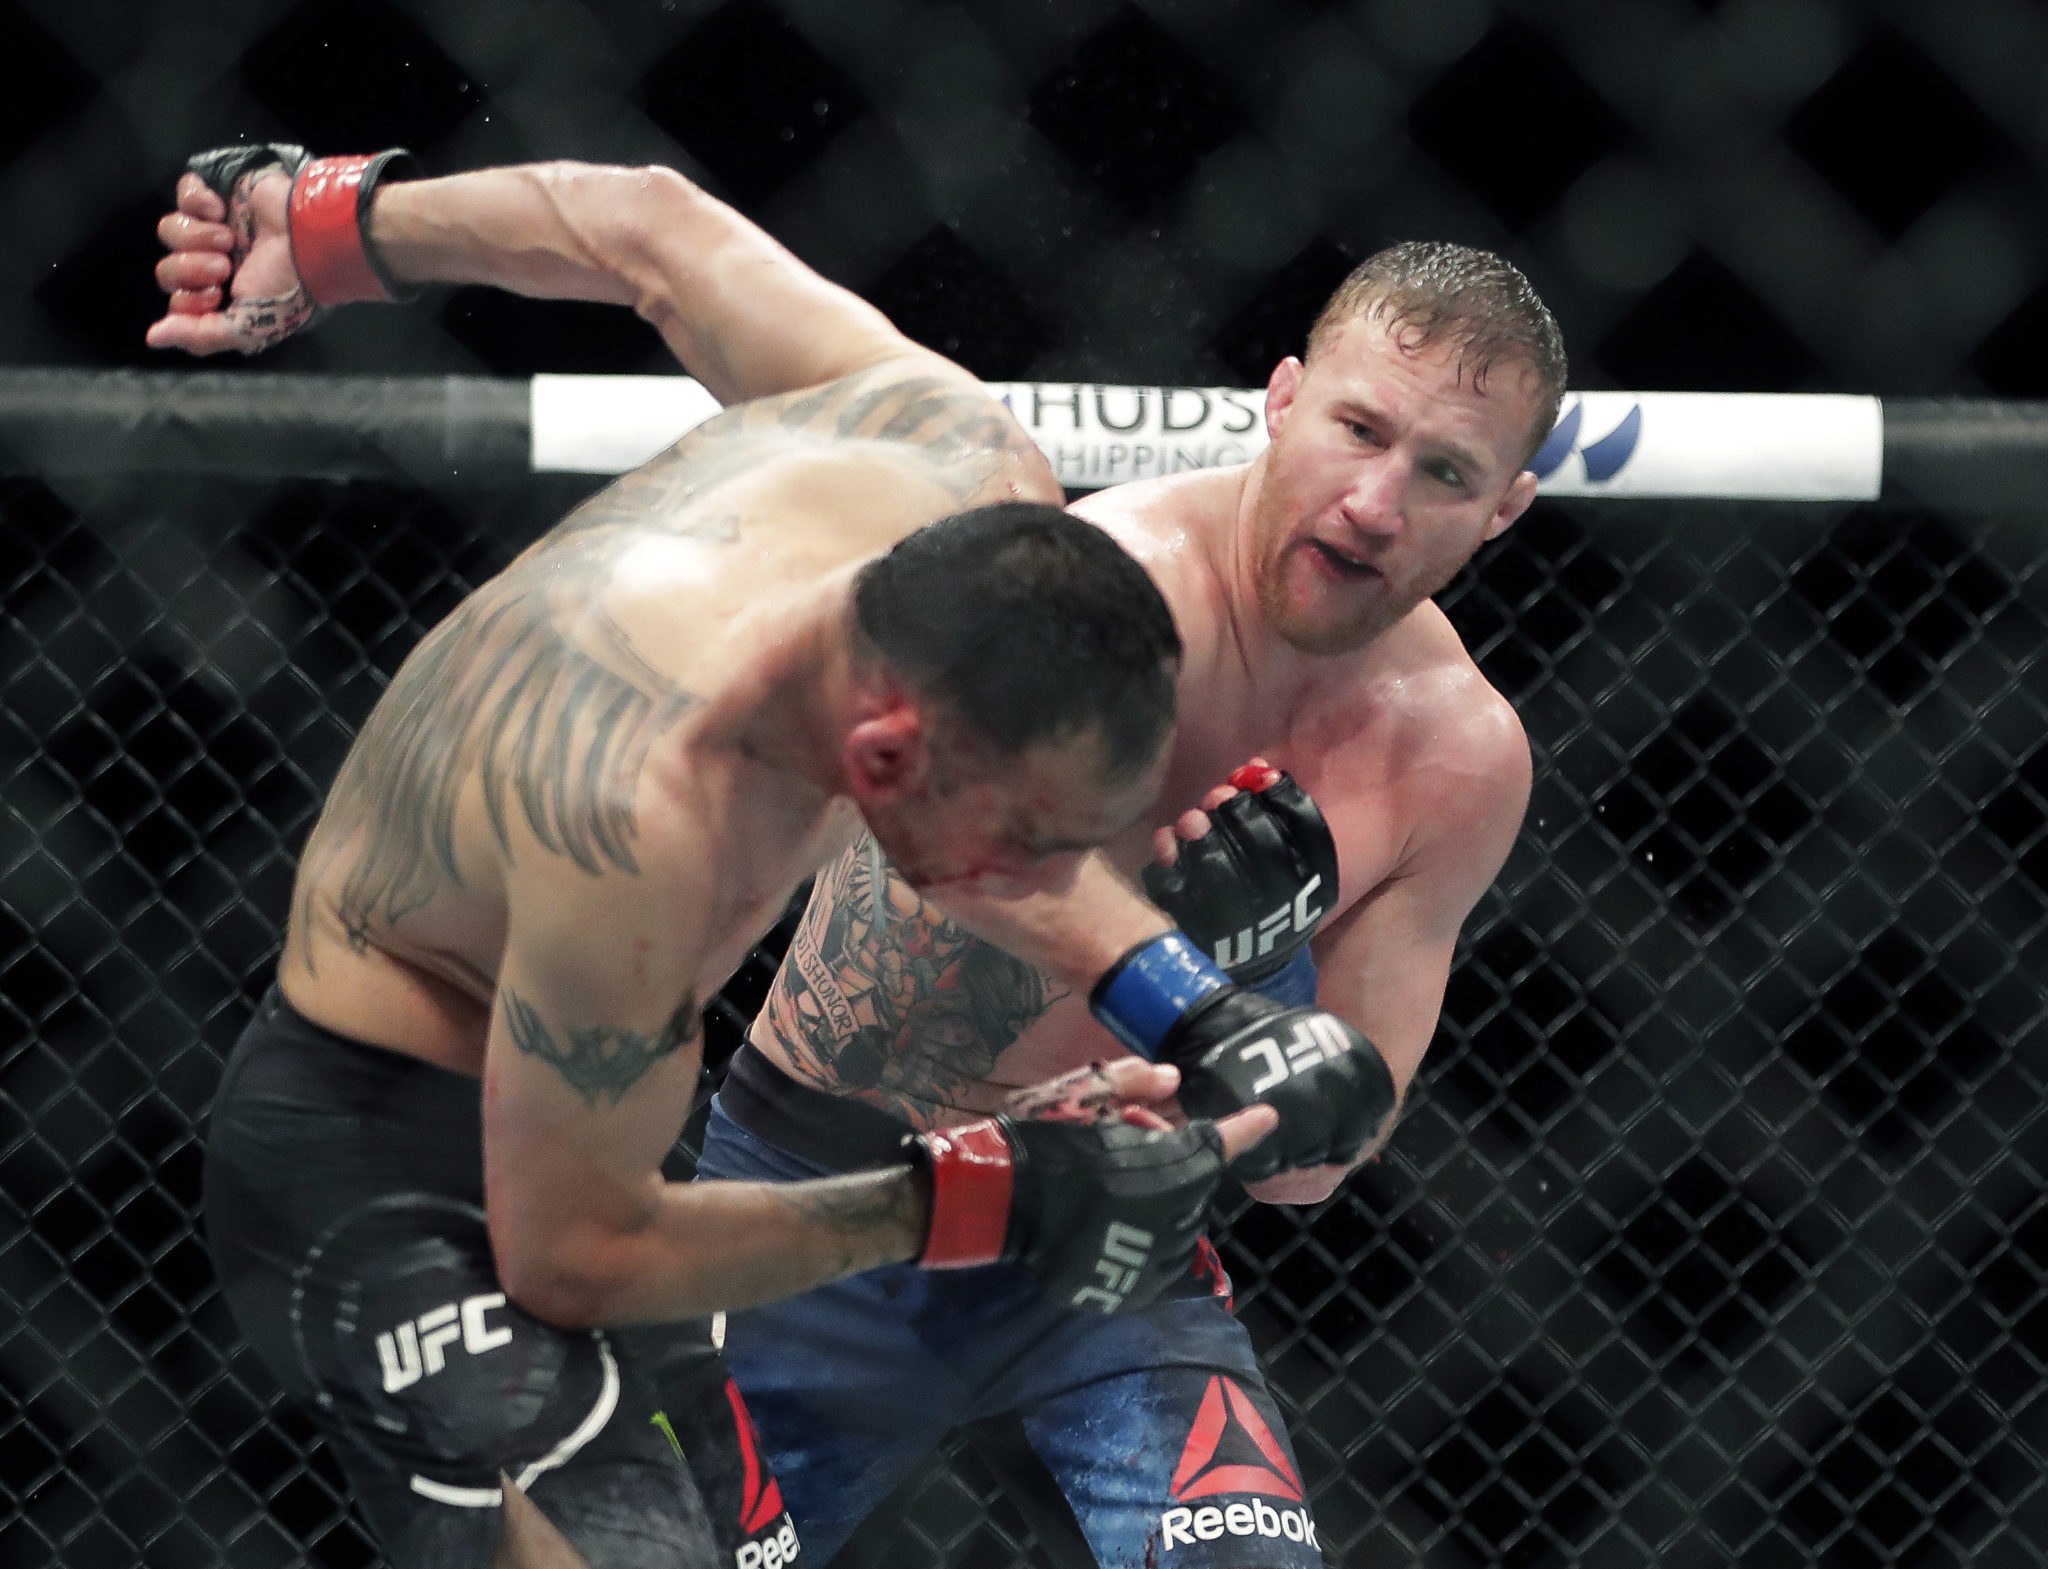 Justin Gaethje Defeats Tony Ferguson by Stoppage in UFC 249